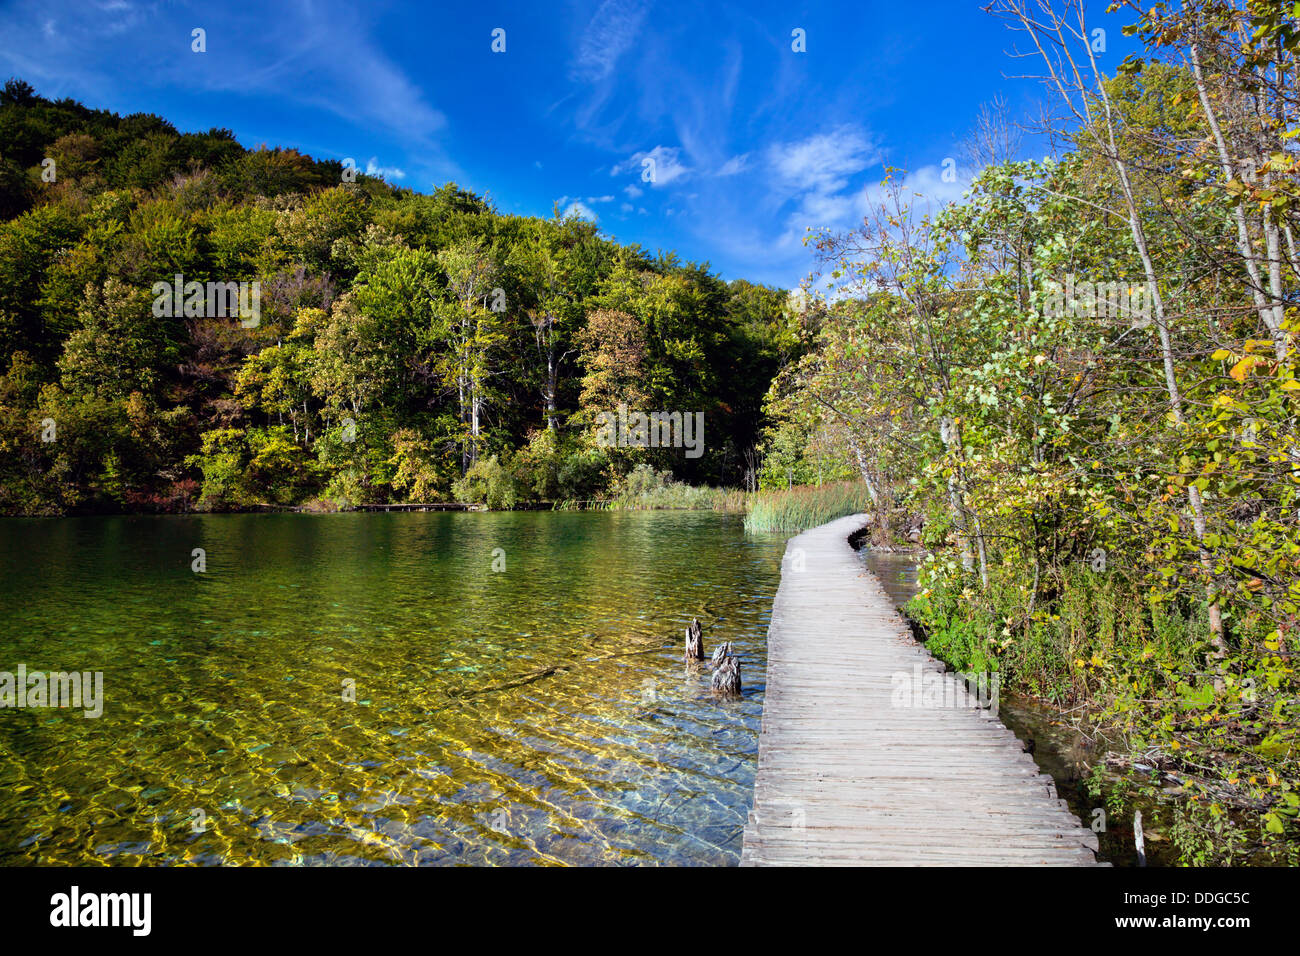 Lake in forest. Crystal clear water. Plitvice Lakes National Park, Croatia - Stock Image